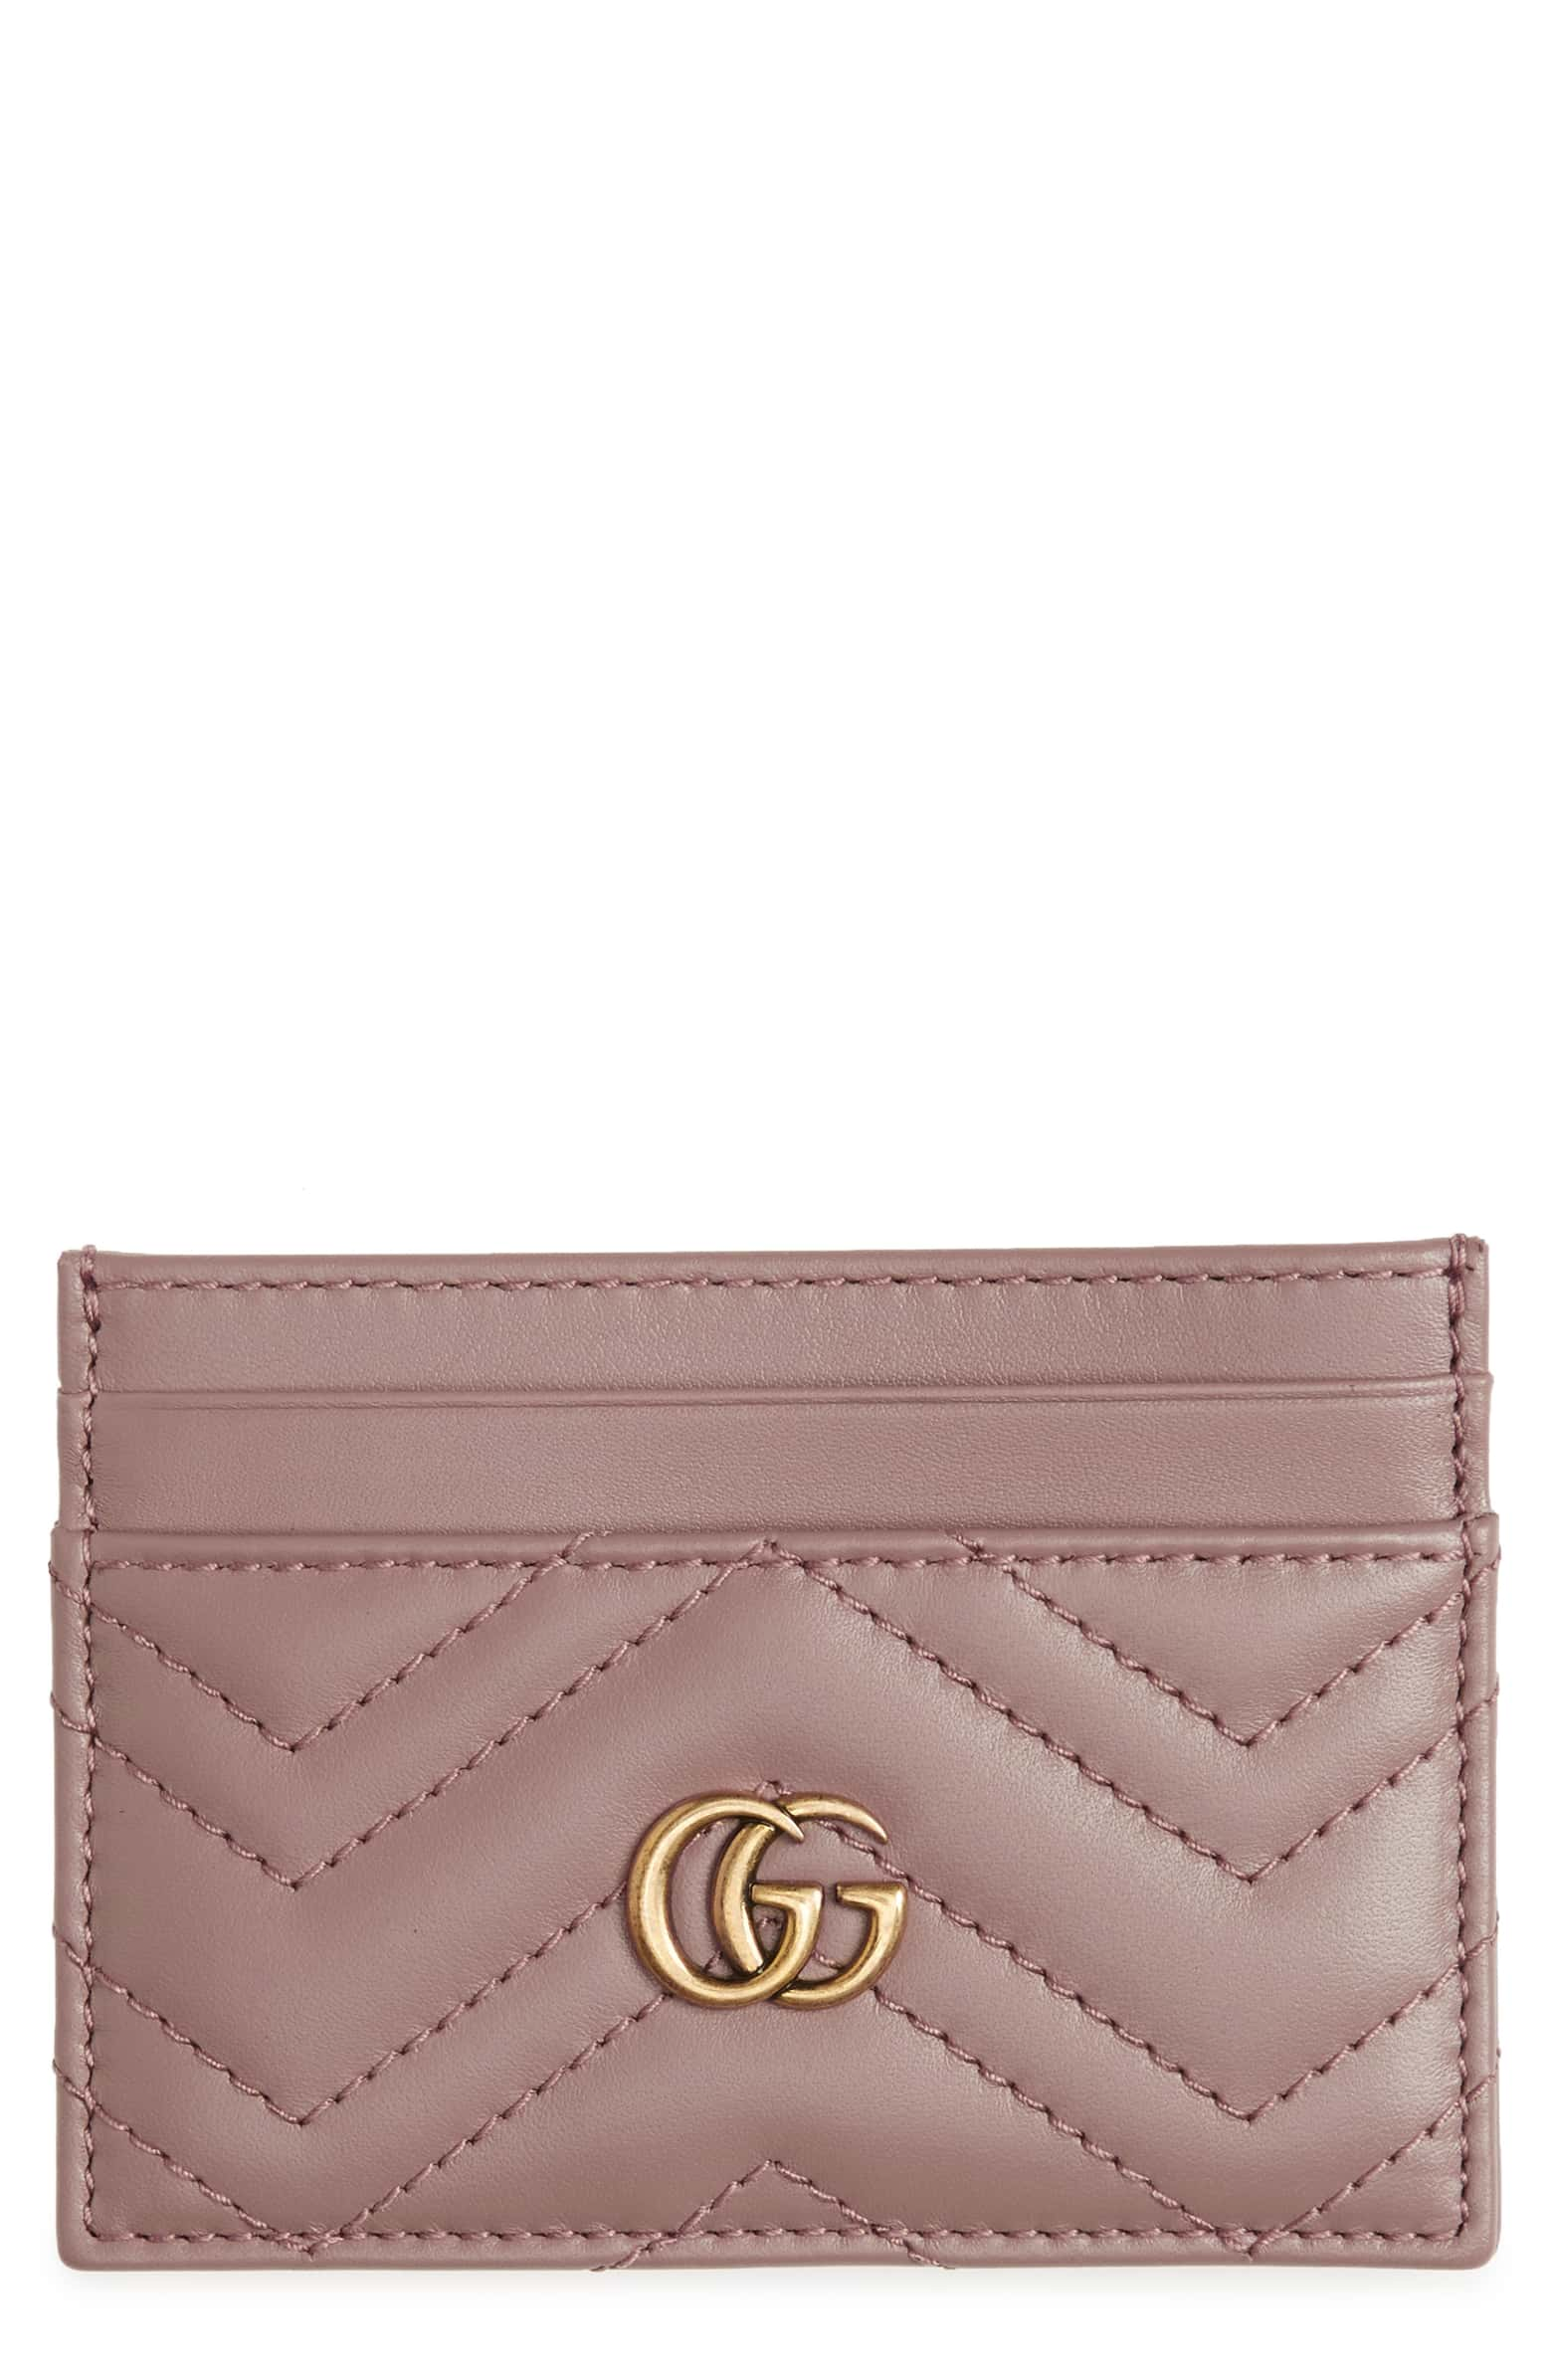 rose gucci card case.jpg